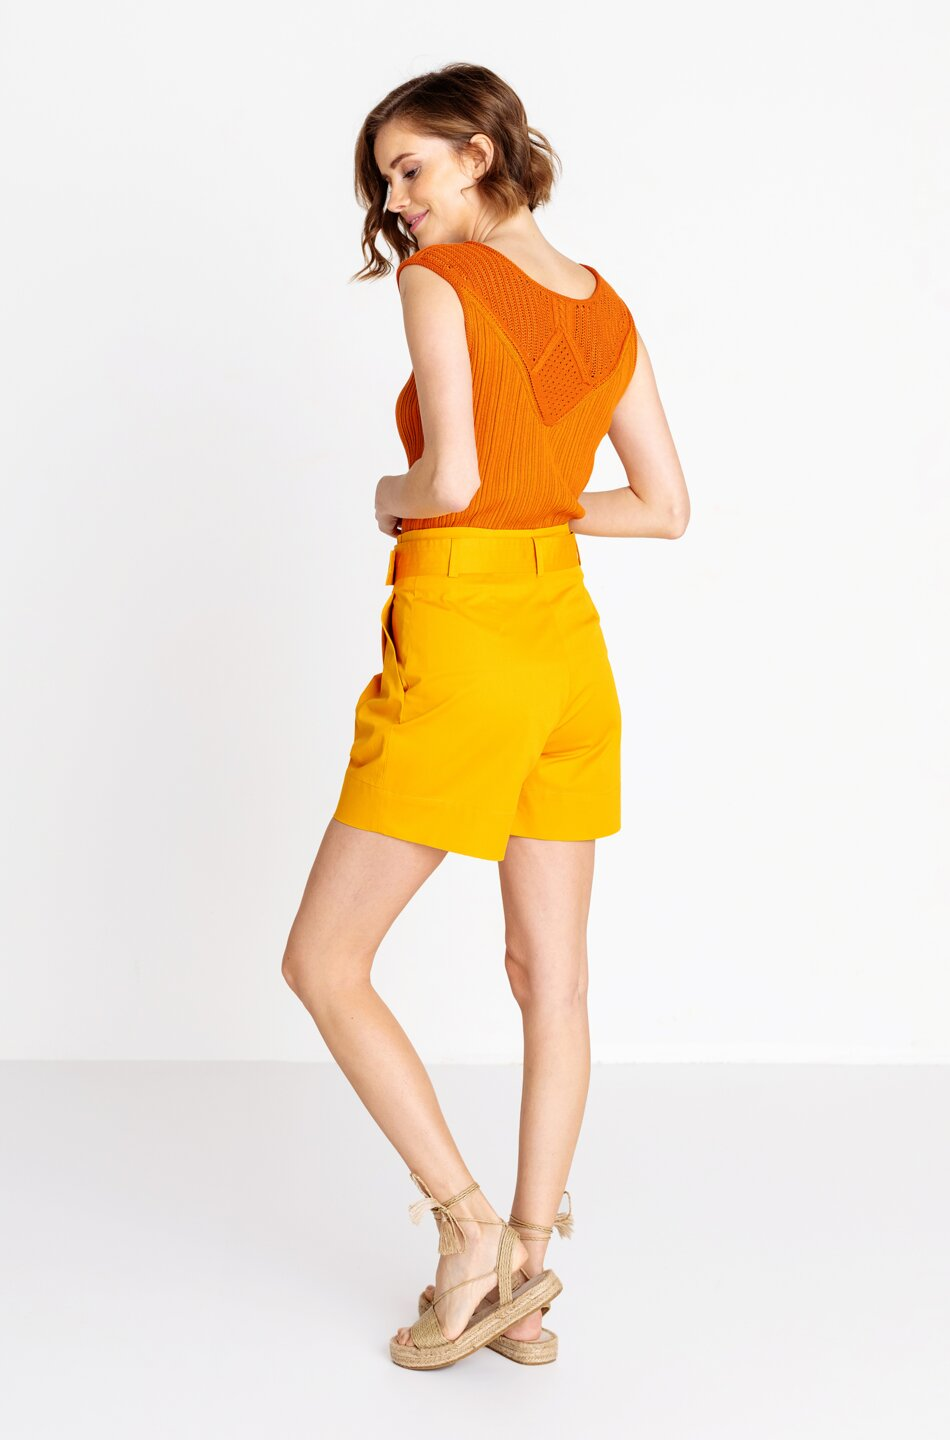 outfit-7c8a4252